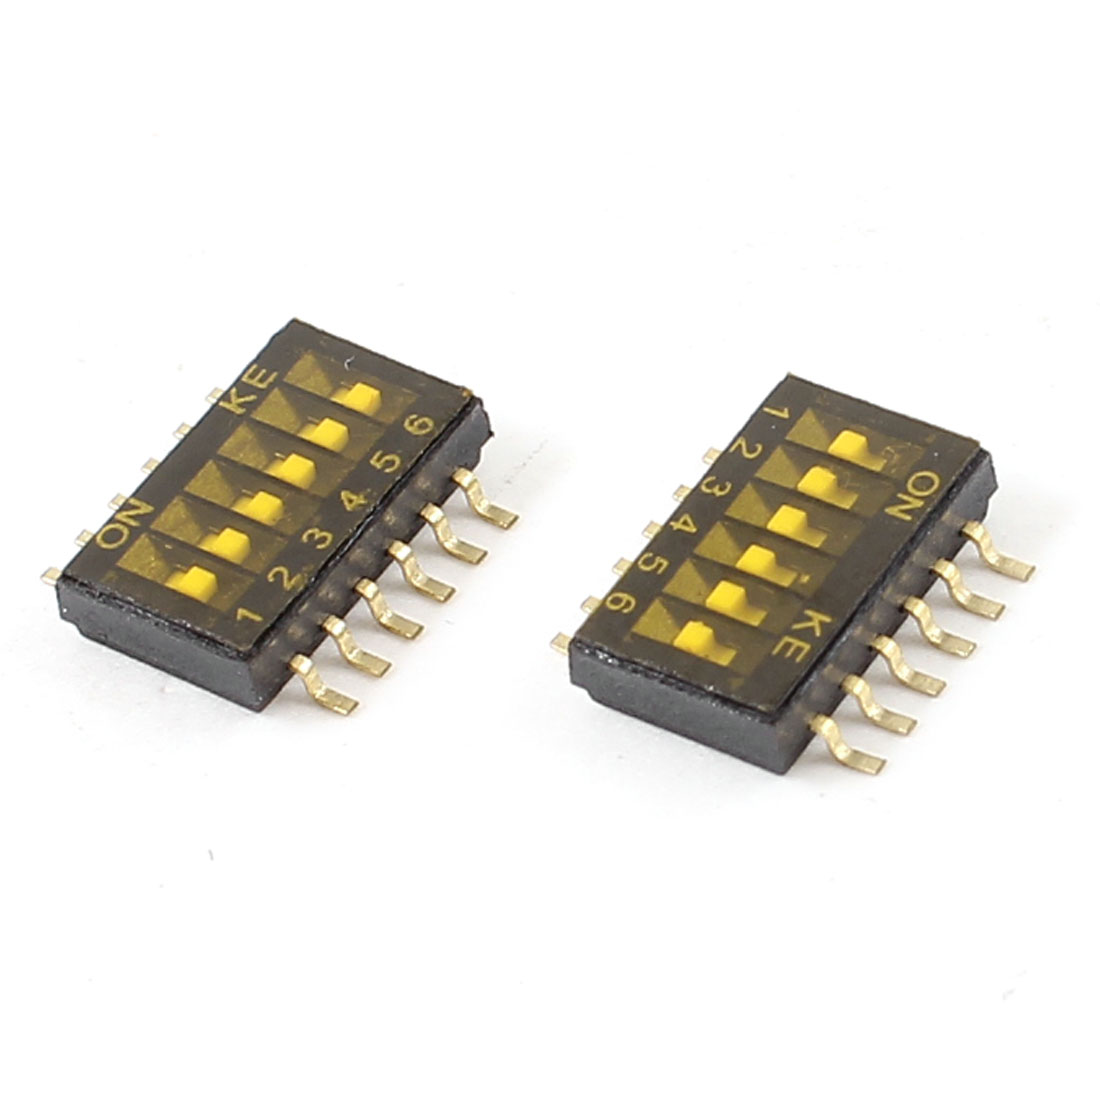 1.27mm Pitch 12Pin 6 Position Slide Type SMT SMD DIP Switch 2 Pieces